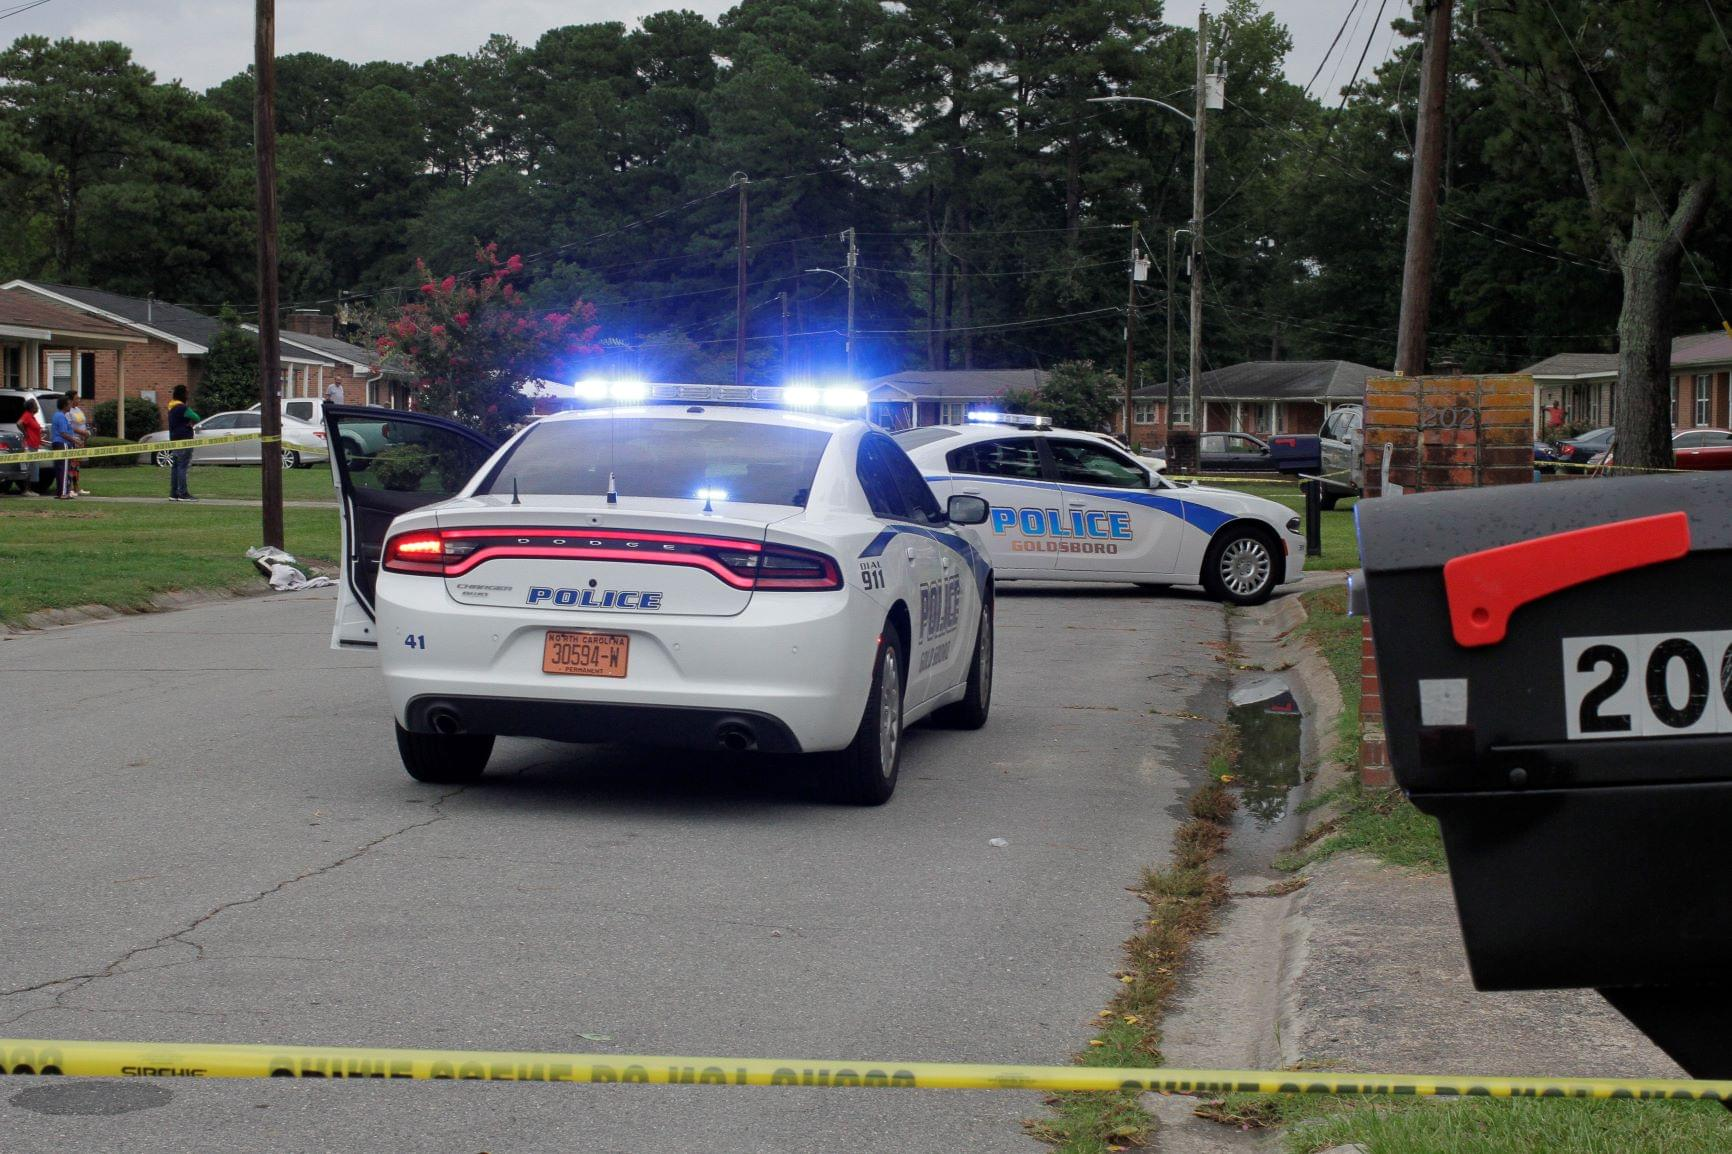 Shooting Victim Perishes, Juvenile Charged With 1st Degree Murder